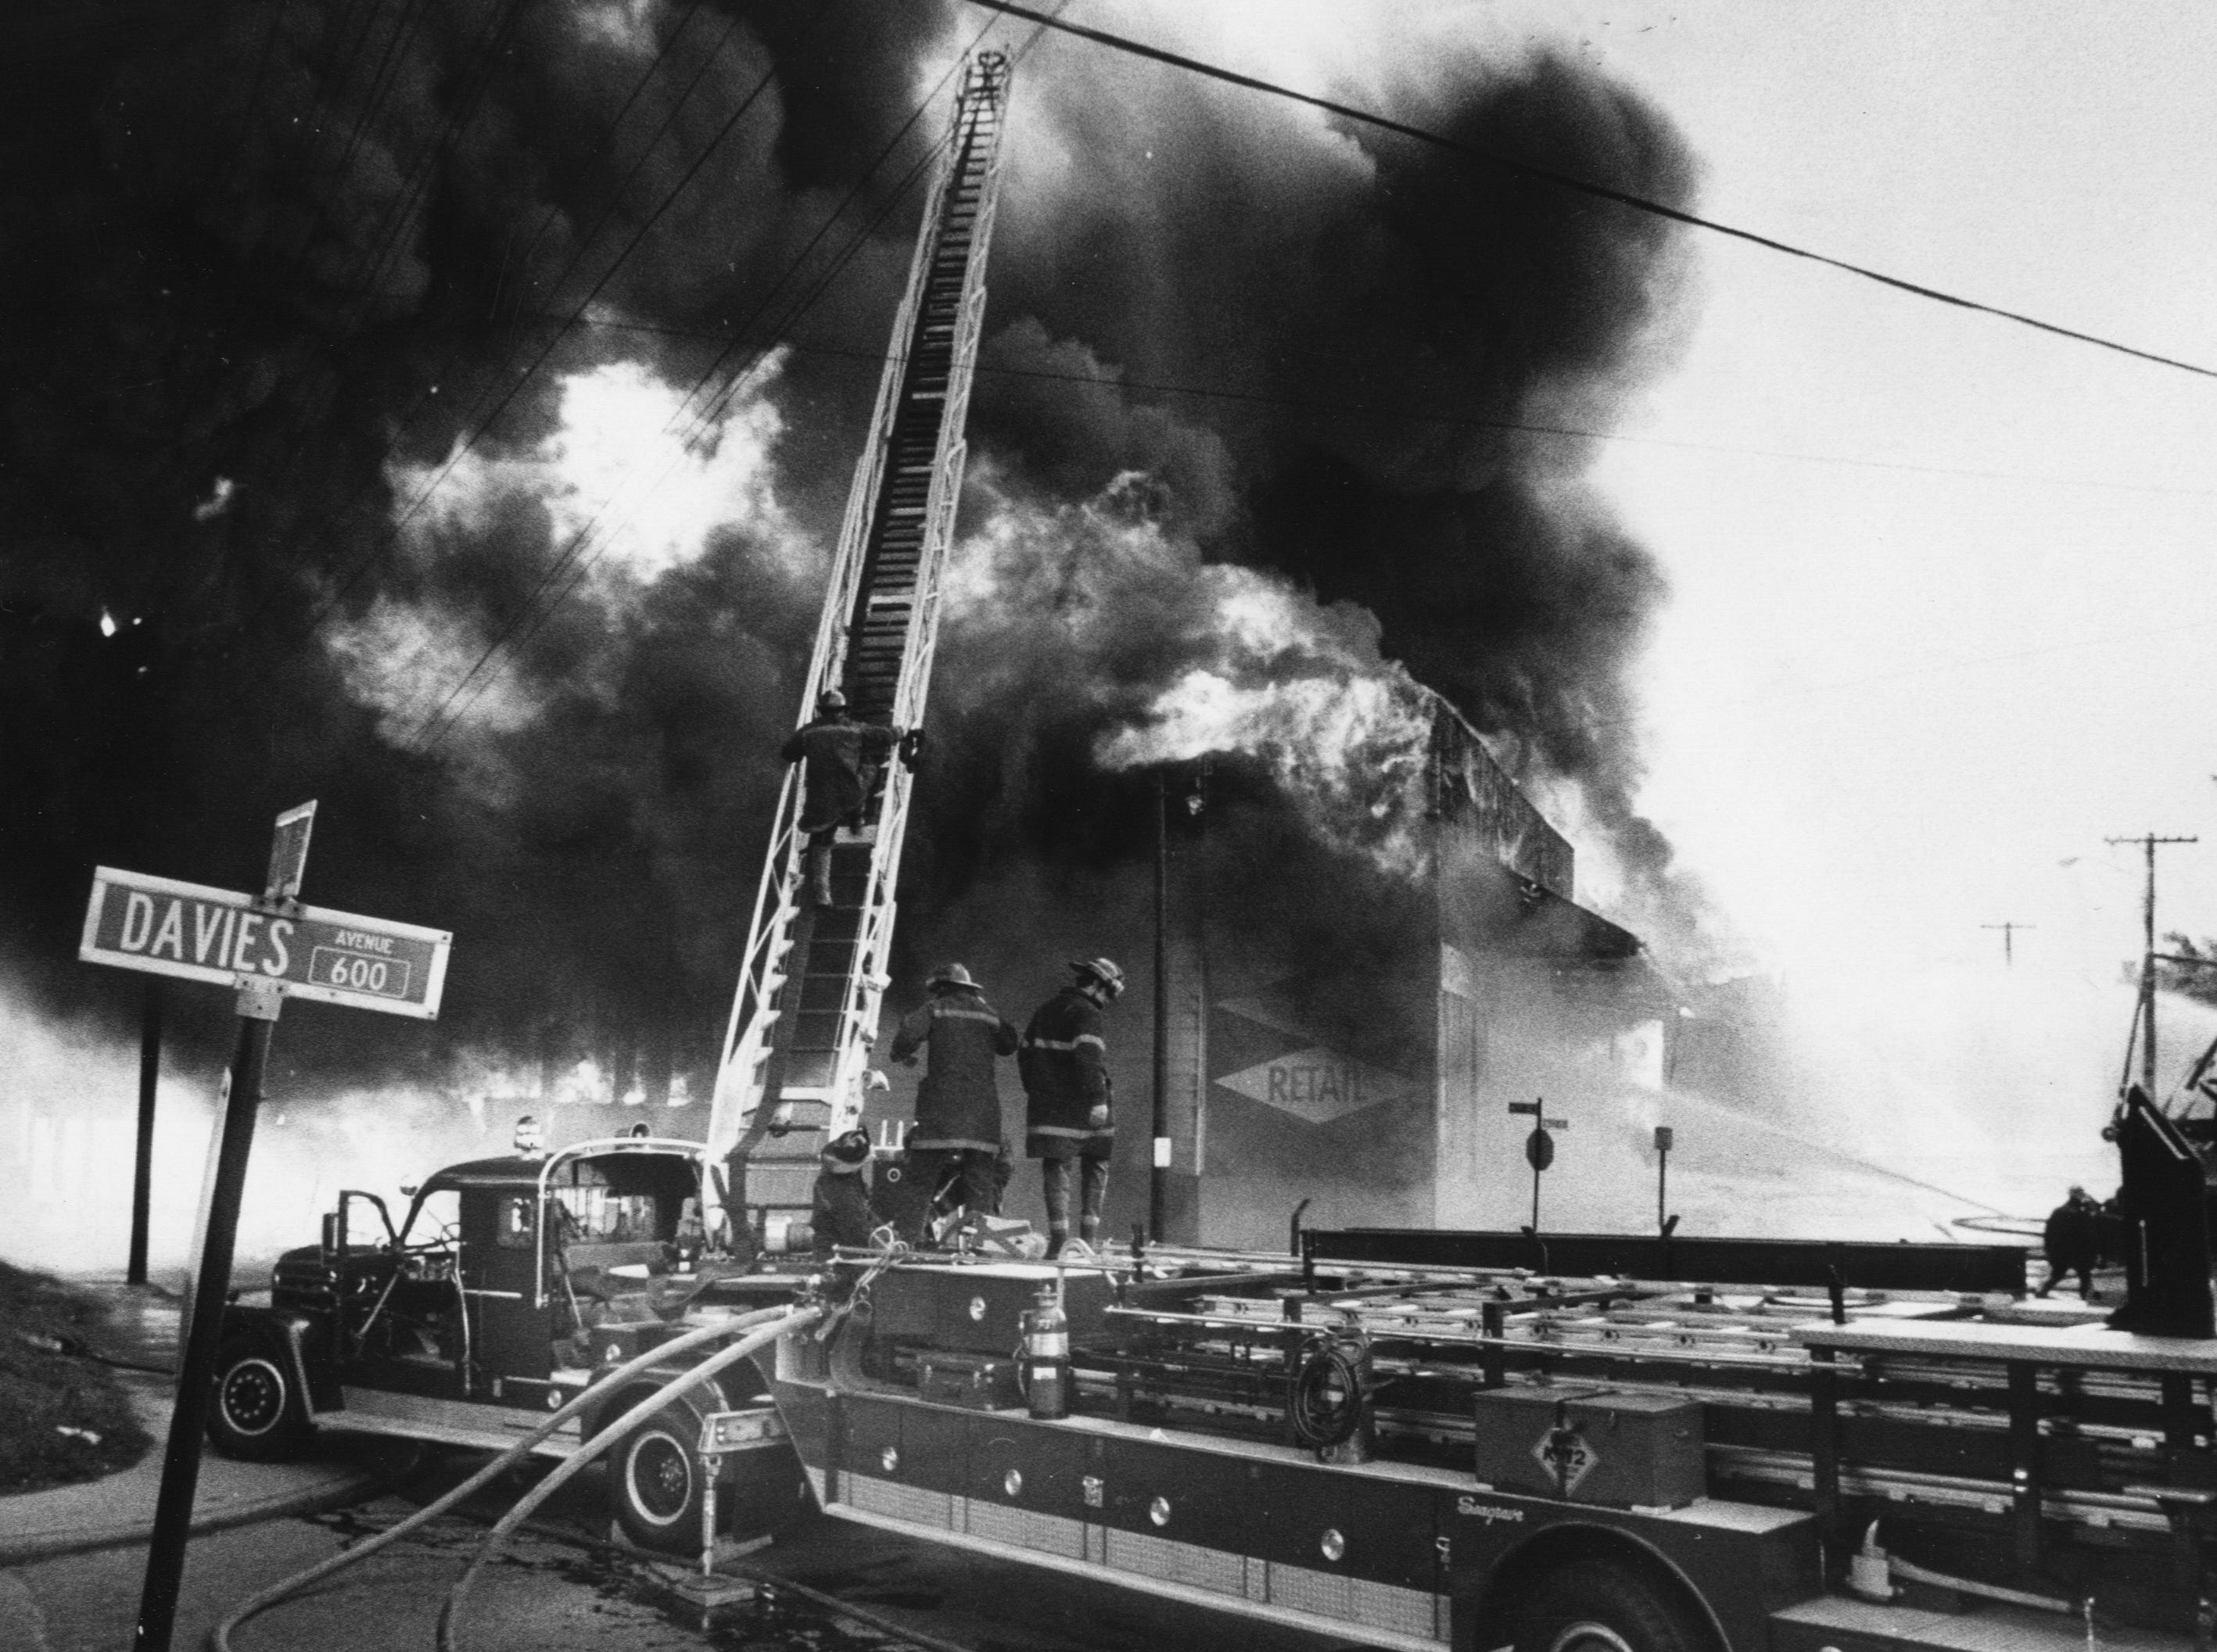 Firemen battled a blaze at the Kentucky Lumber Co. warehouse at Seventh and Lee streets. 